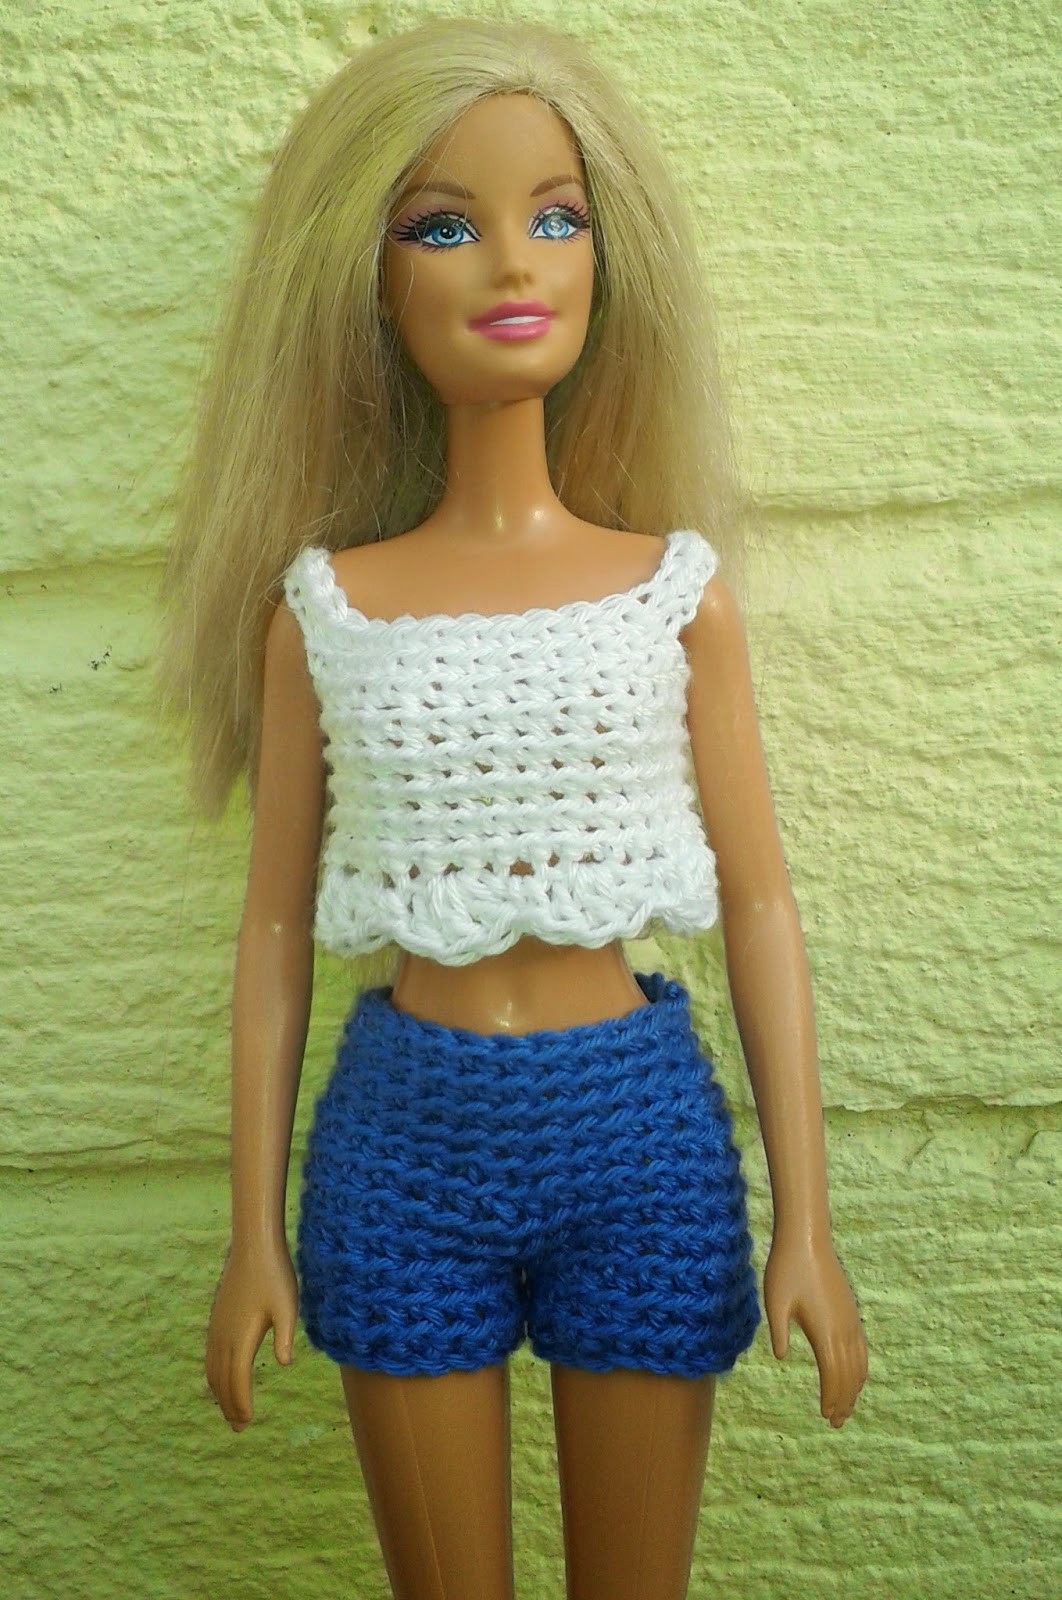 Crochet Barbie Dress Unique Linmary Knits Barbie Crochet Shorts and Cropped top Of Amazing 46 Pictures Crochet Barbie Dress